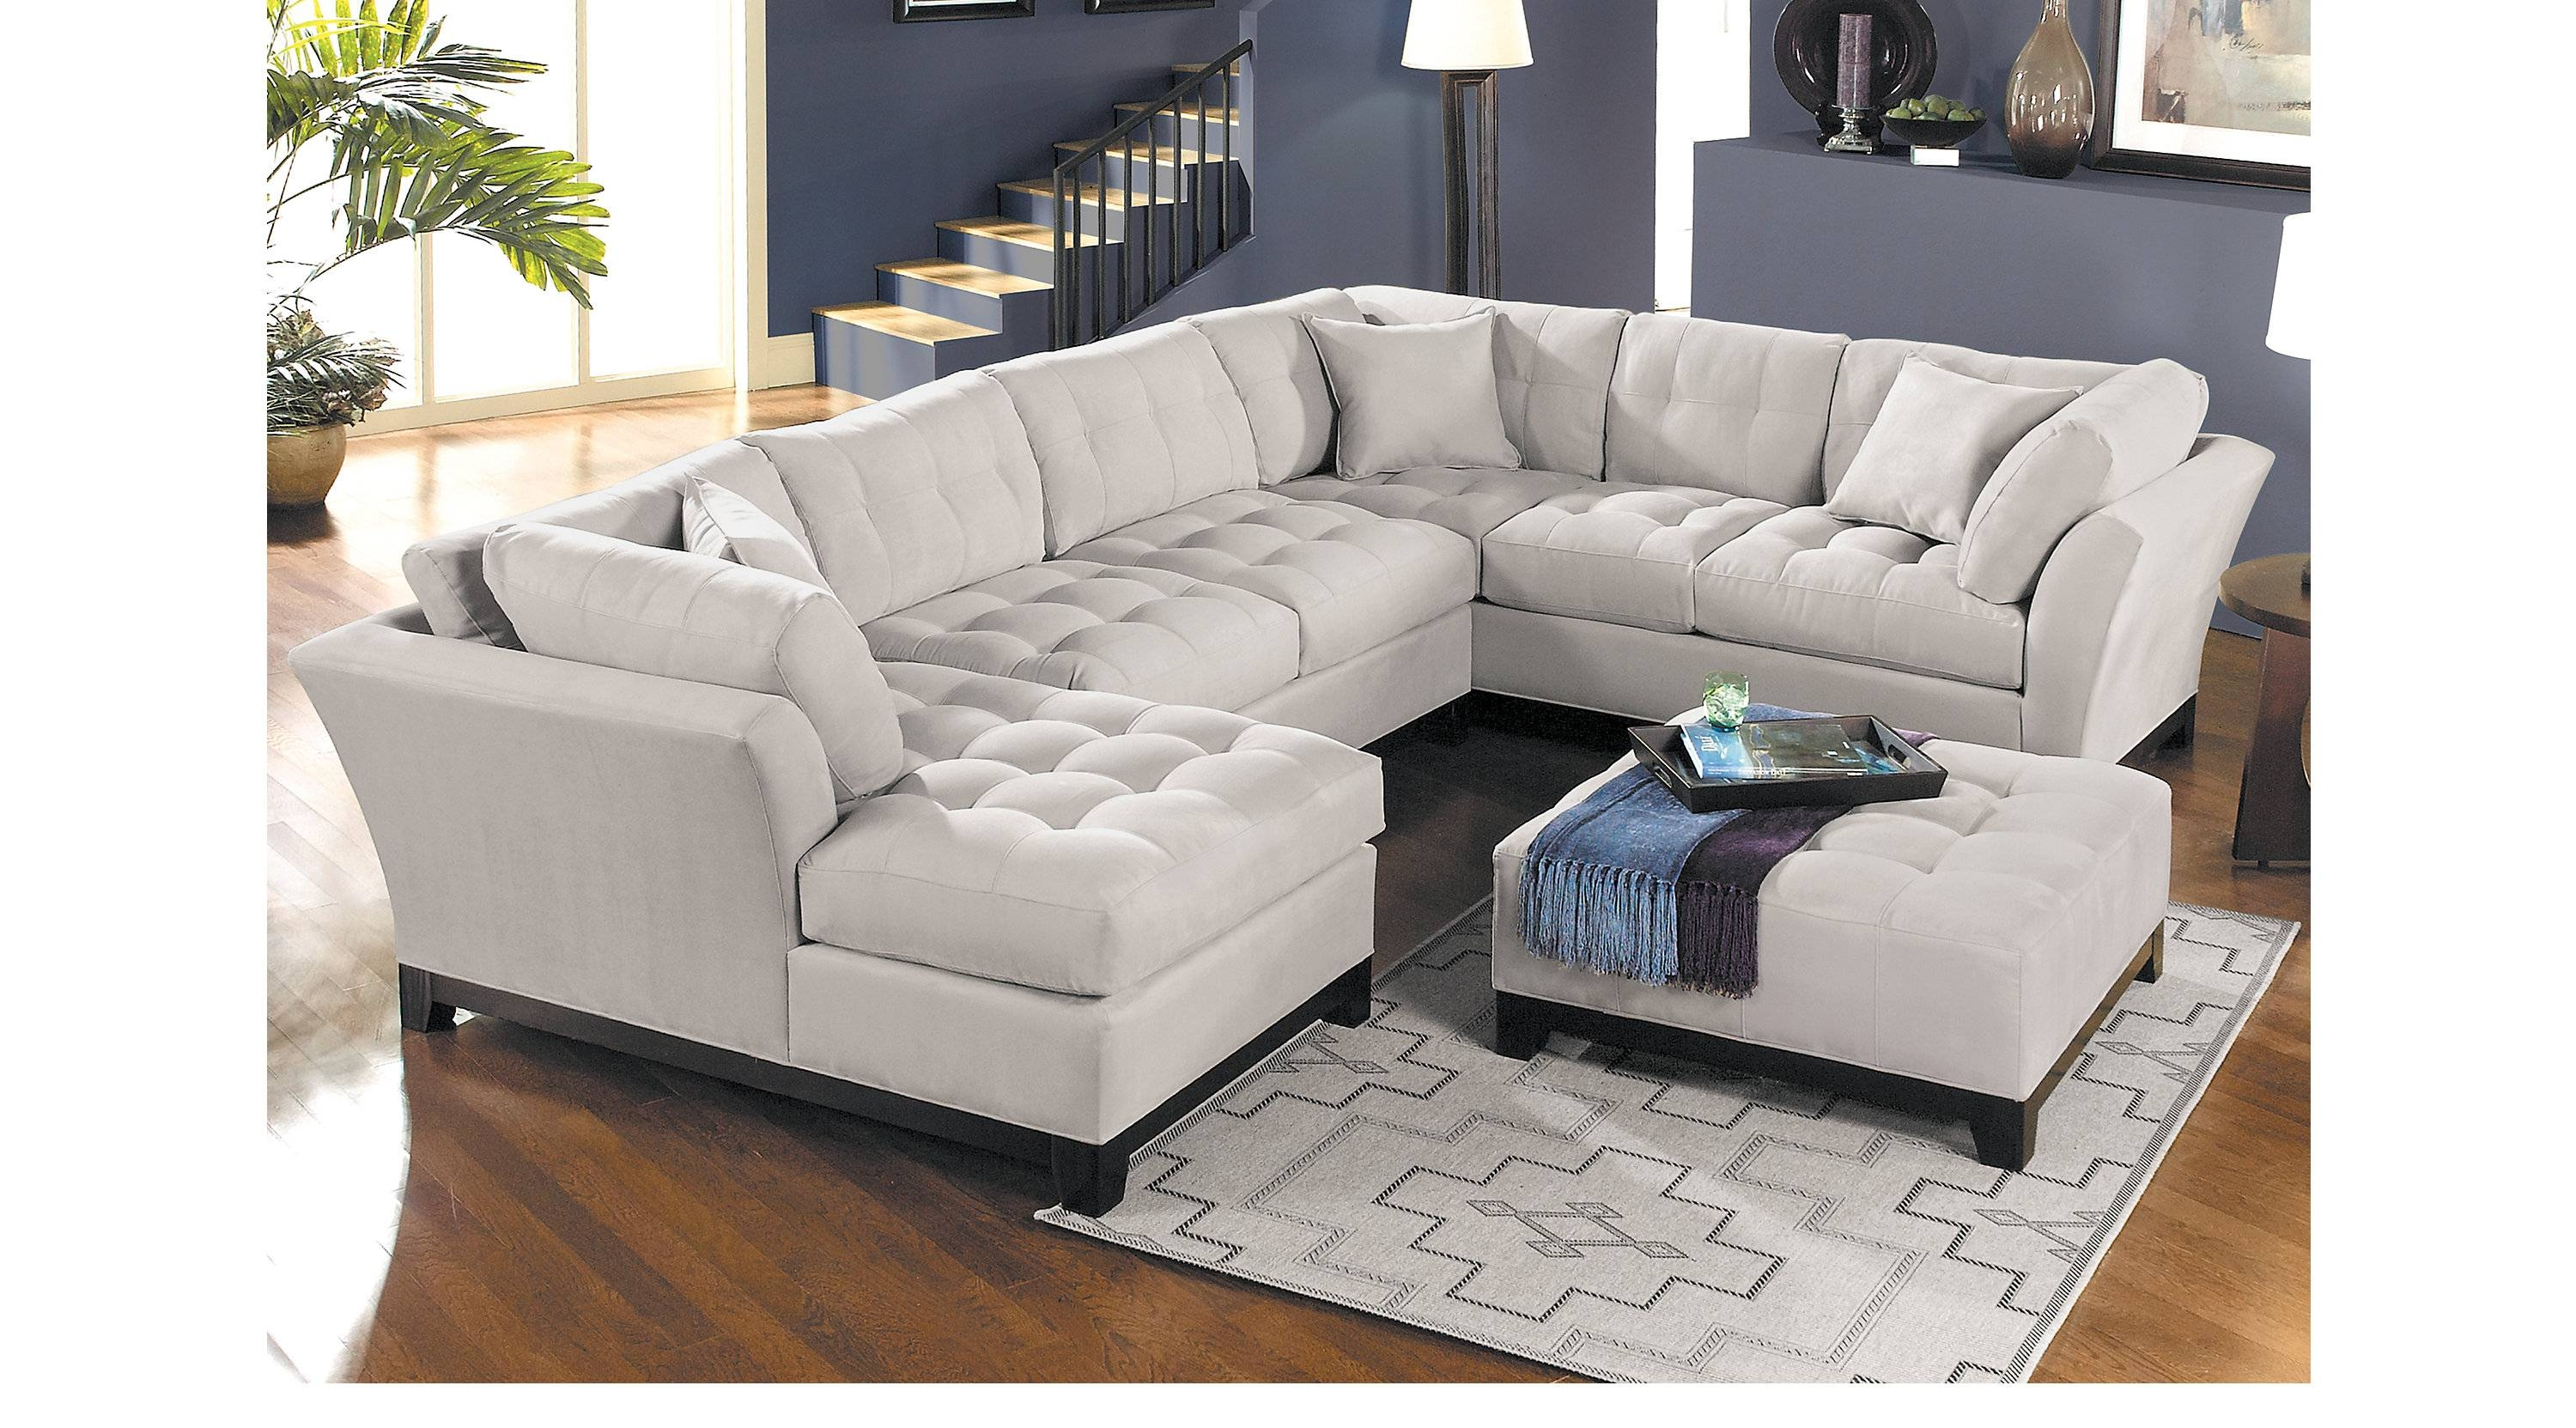 Cindy Crawford Sectional Sofa | Demand Sofas Set inside Cindy Crawford Home Sectional Sofa (Image 16 of 30)